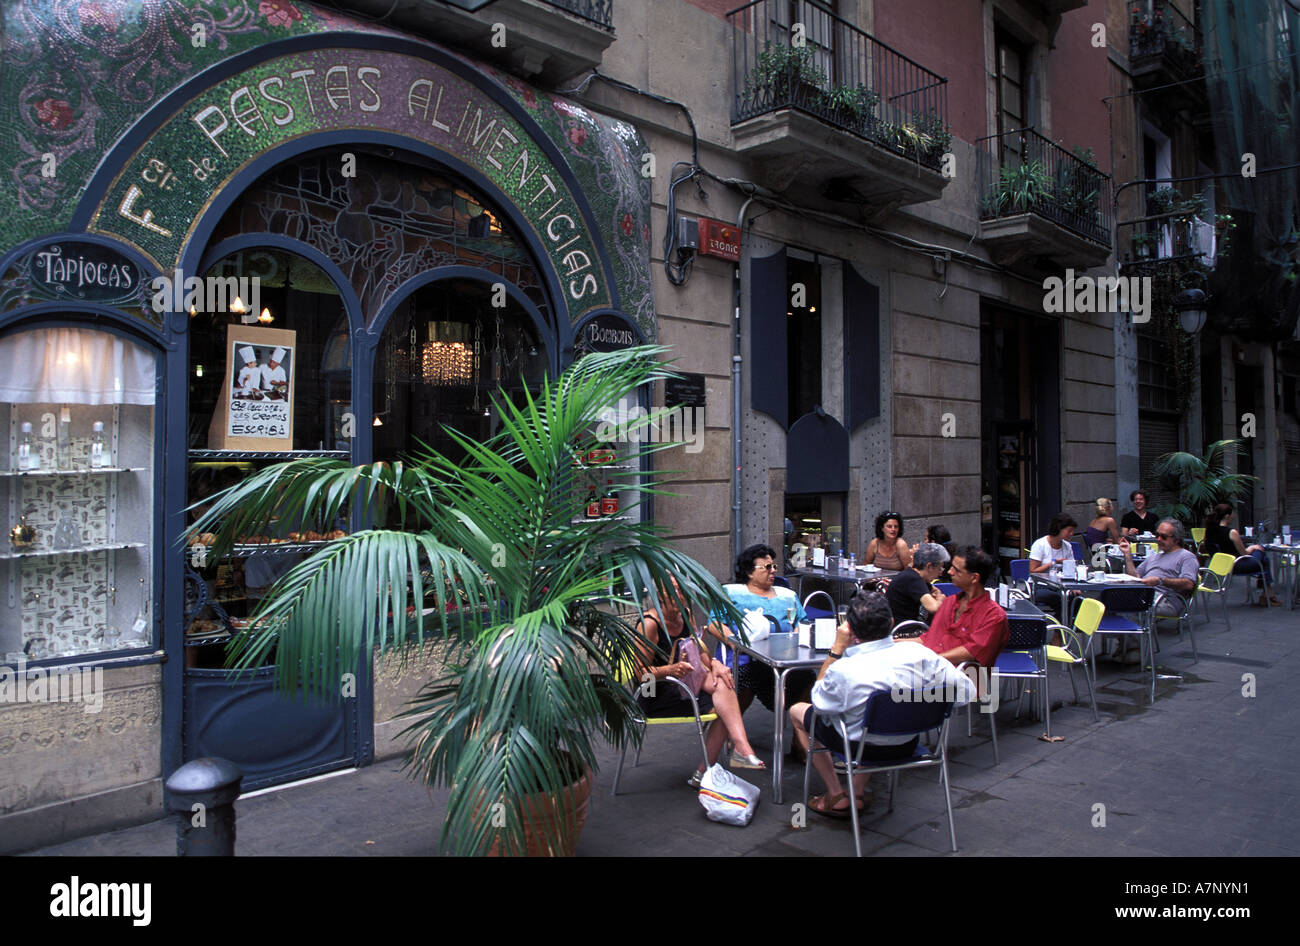 Spain, Catalonia, Barcelona, Las Ramblas, Escribà café and cake shop - Stock Image